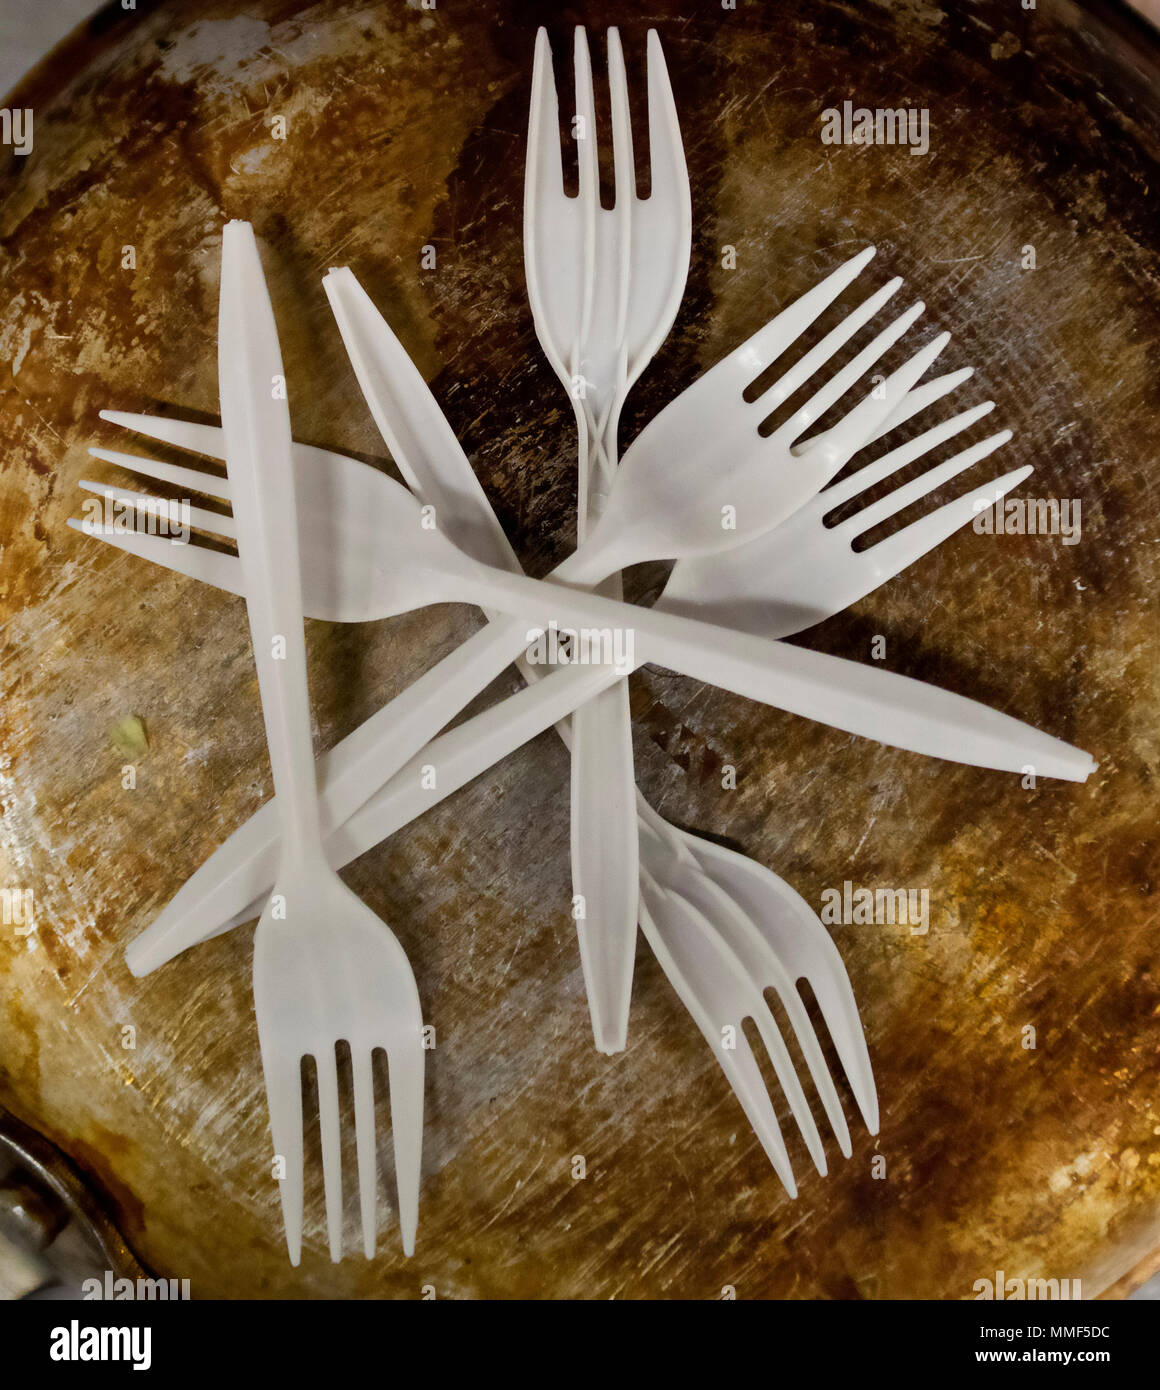 Artistic Arrangement of plastic forks on a rusted metal surface still life - Stock Image